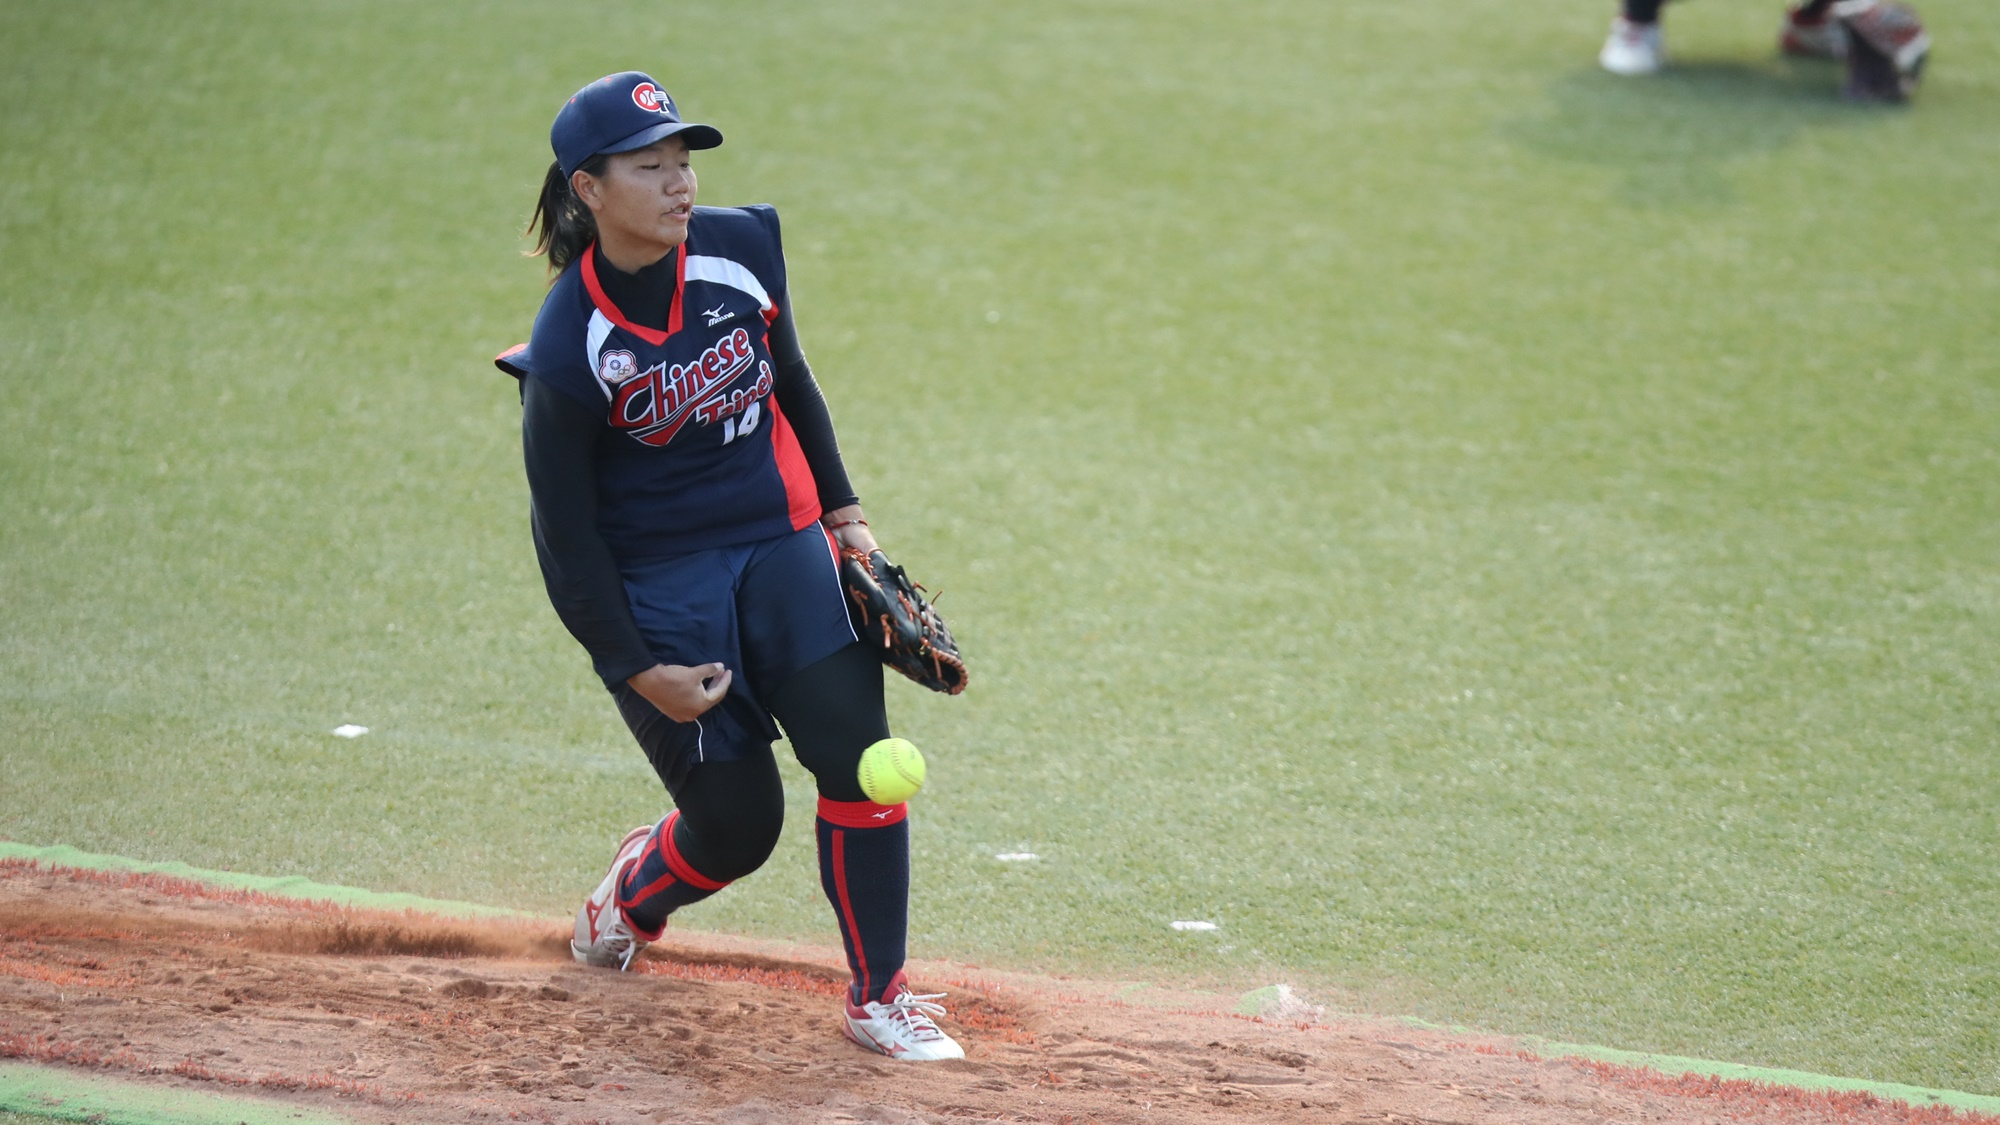 Chia-Chen Tsai received 2 runs and 3 hits in 3.2 innings